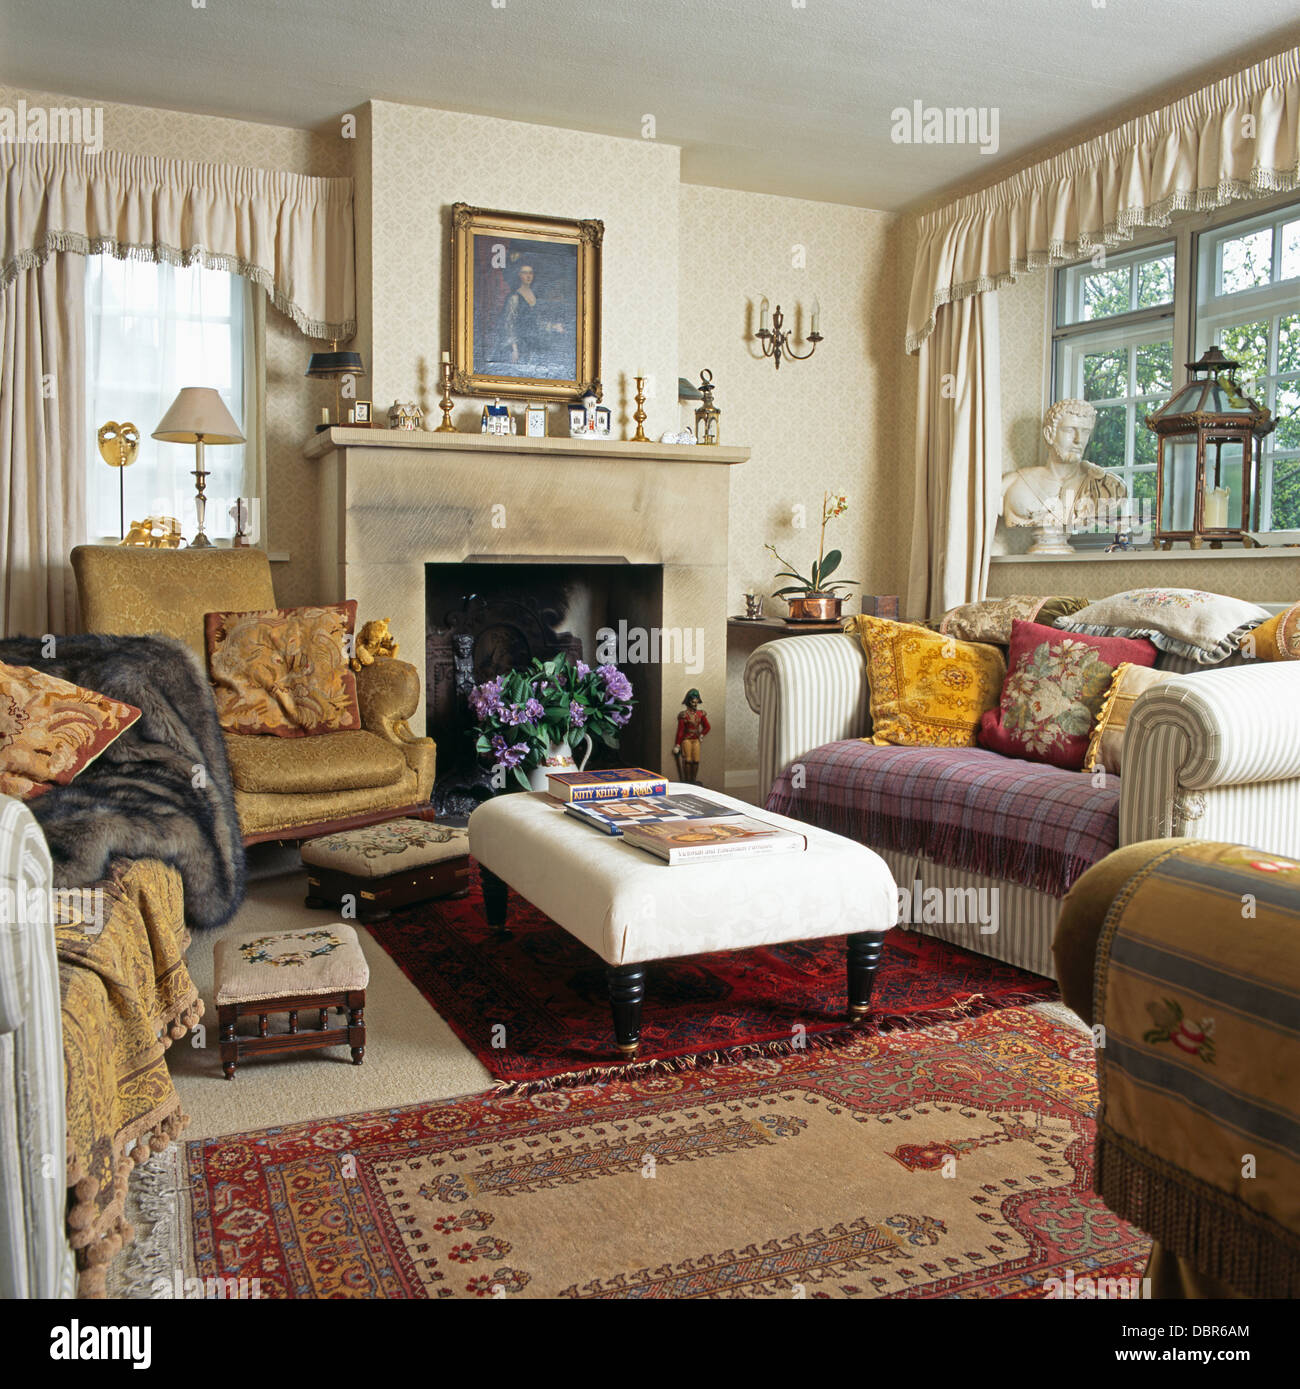 Sofas Piled With Cushions On Either Side Of Upholstered Stool In Front Of  Fireplace In Cottage Living Room With Oriental Rugs Part 59